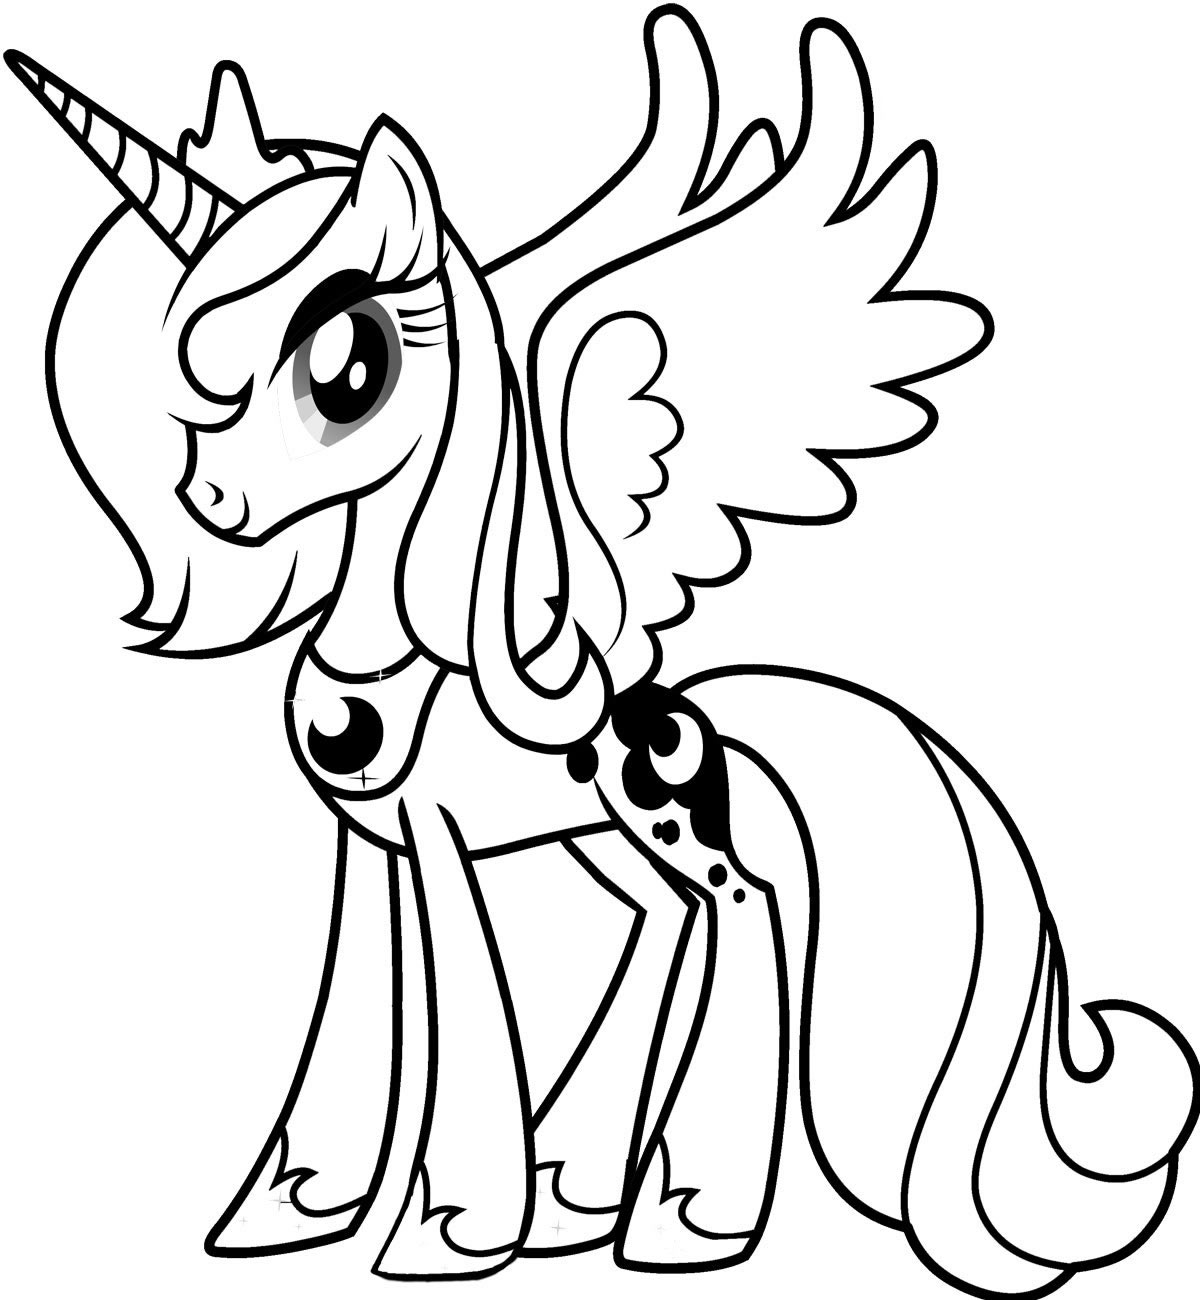 coloring pages ponies - photo#18